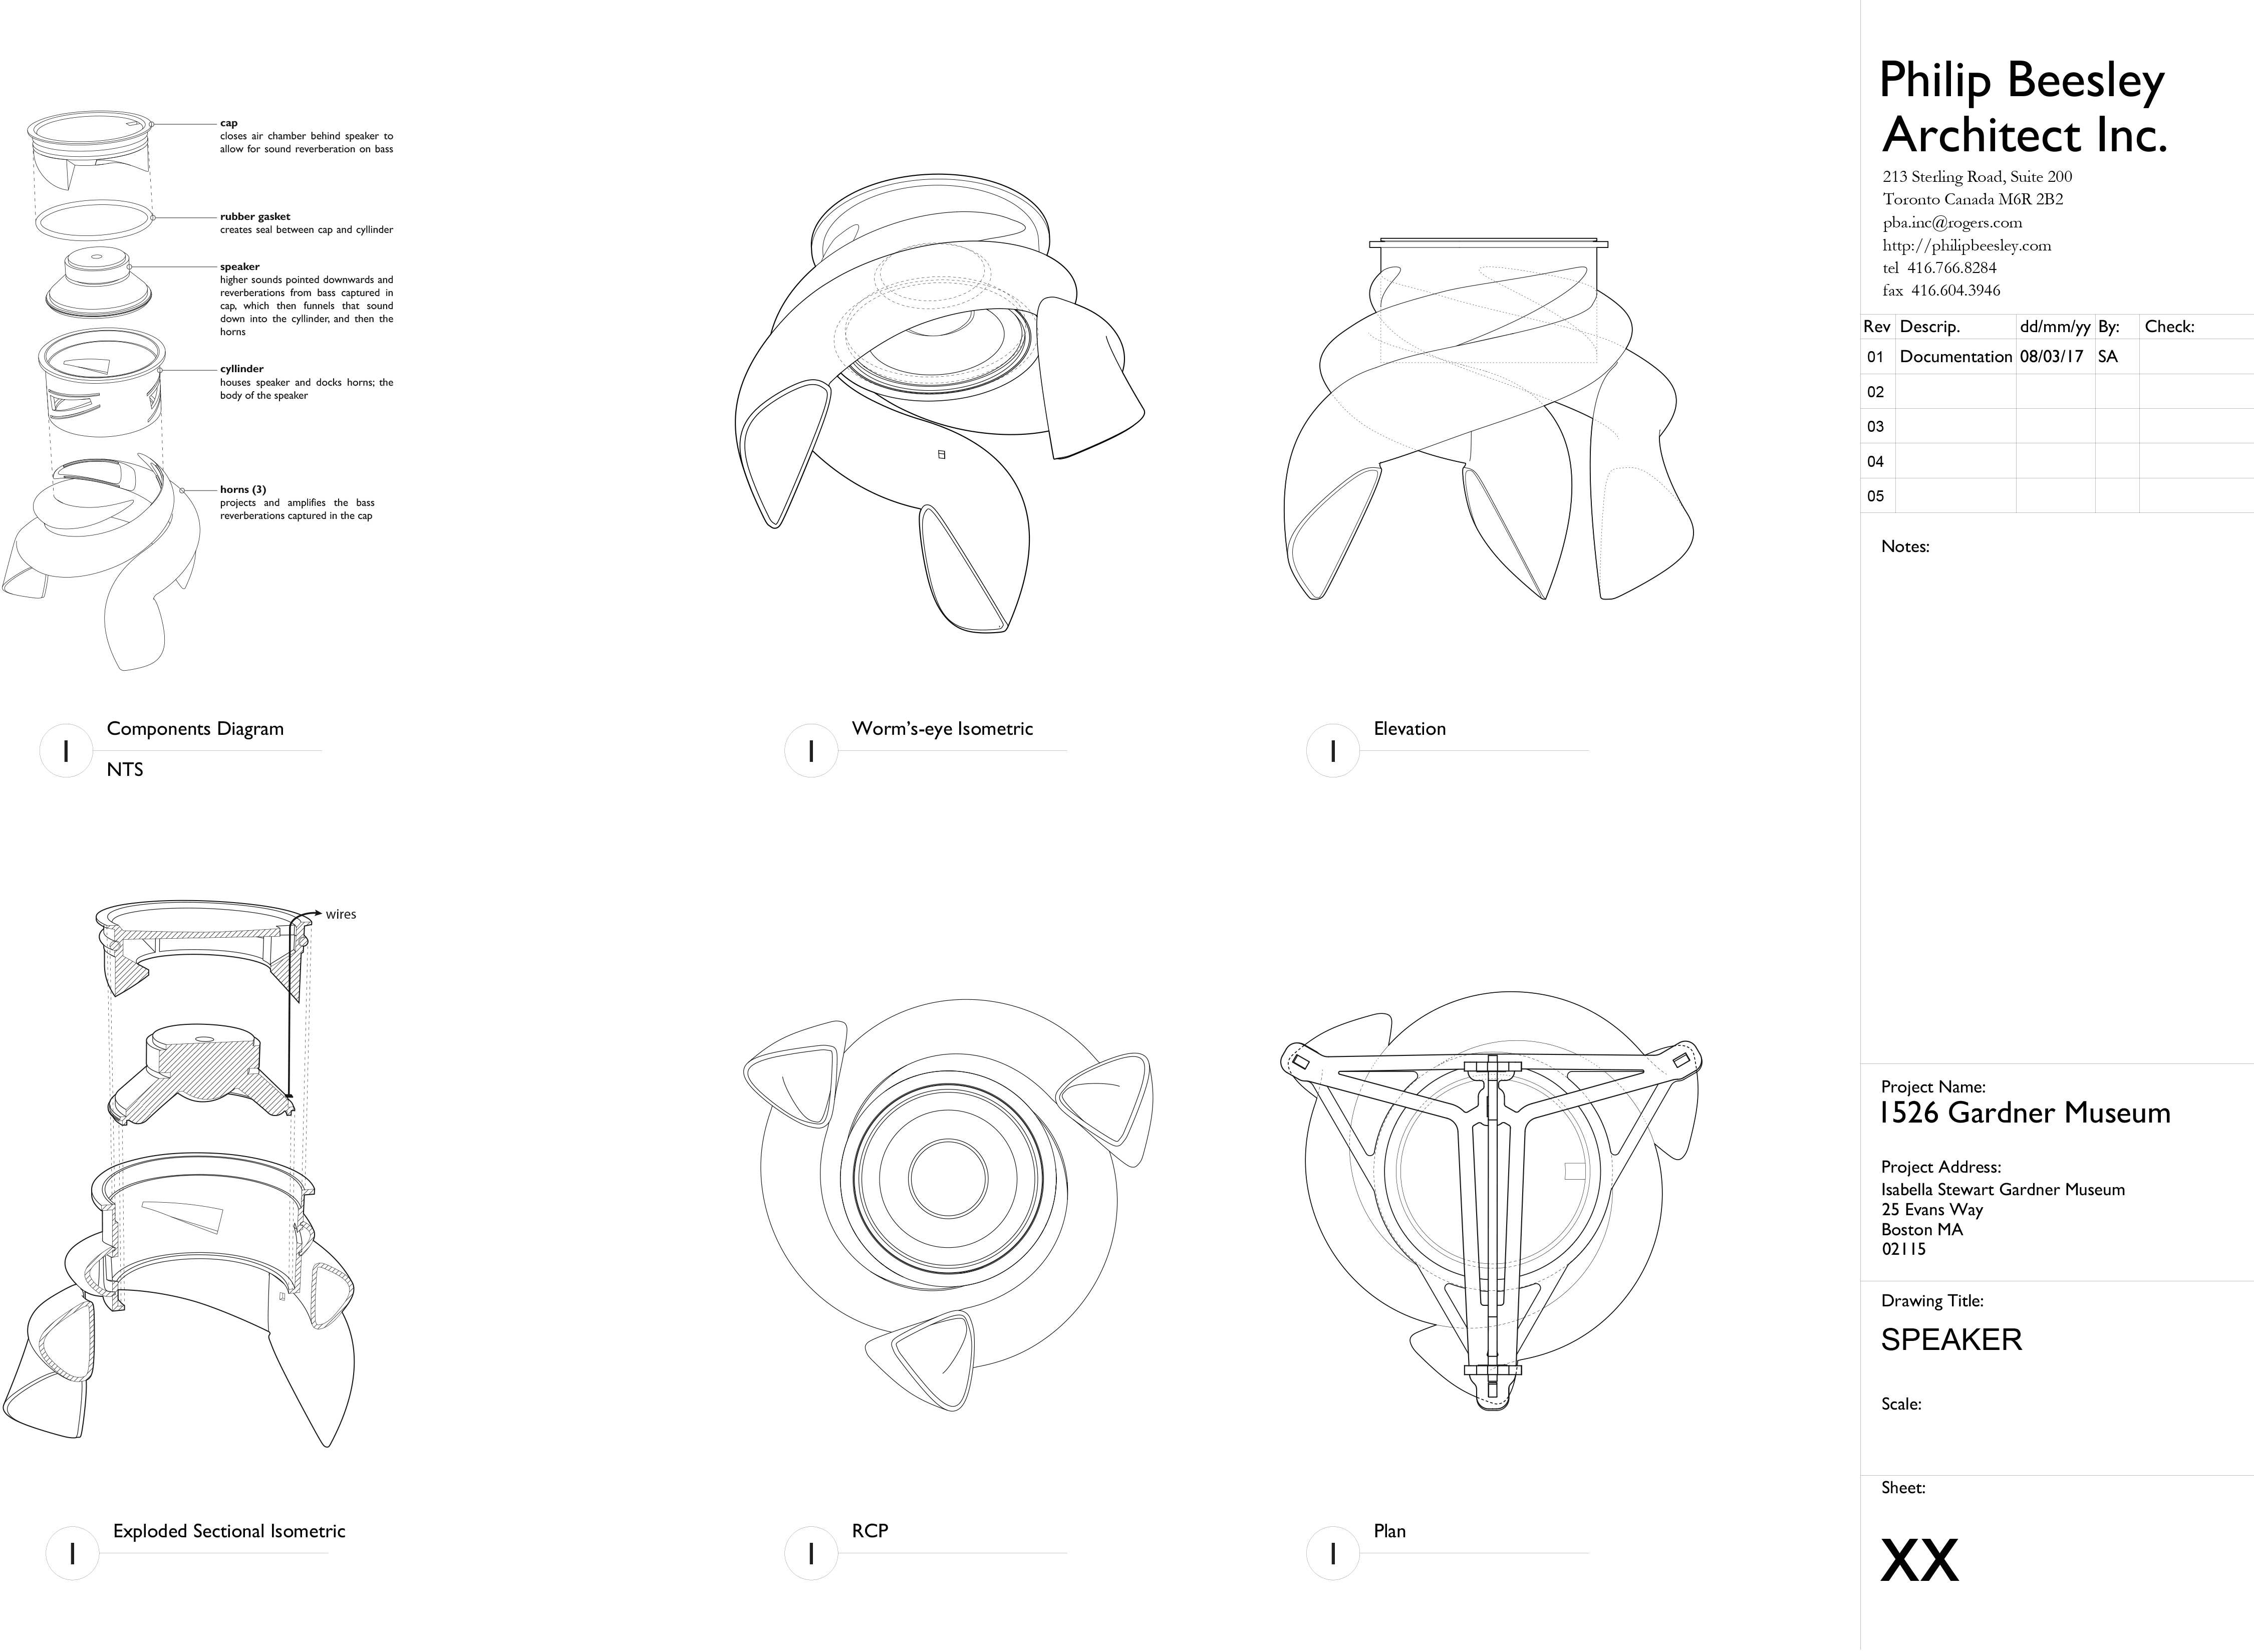 Design drawings of Philip Beesley's custom speakers, prototyped and produced using SLA 3D printing for his Sentient Veil installation at the Isabella Stewart Gardner Museum in Boston.